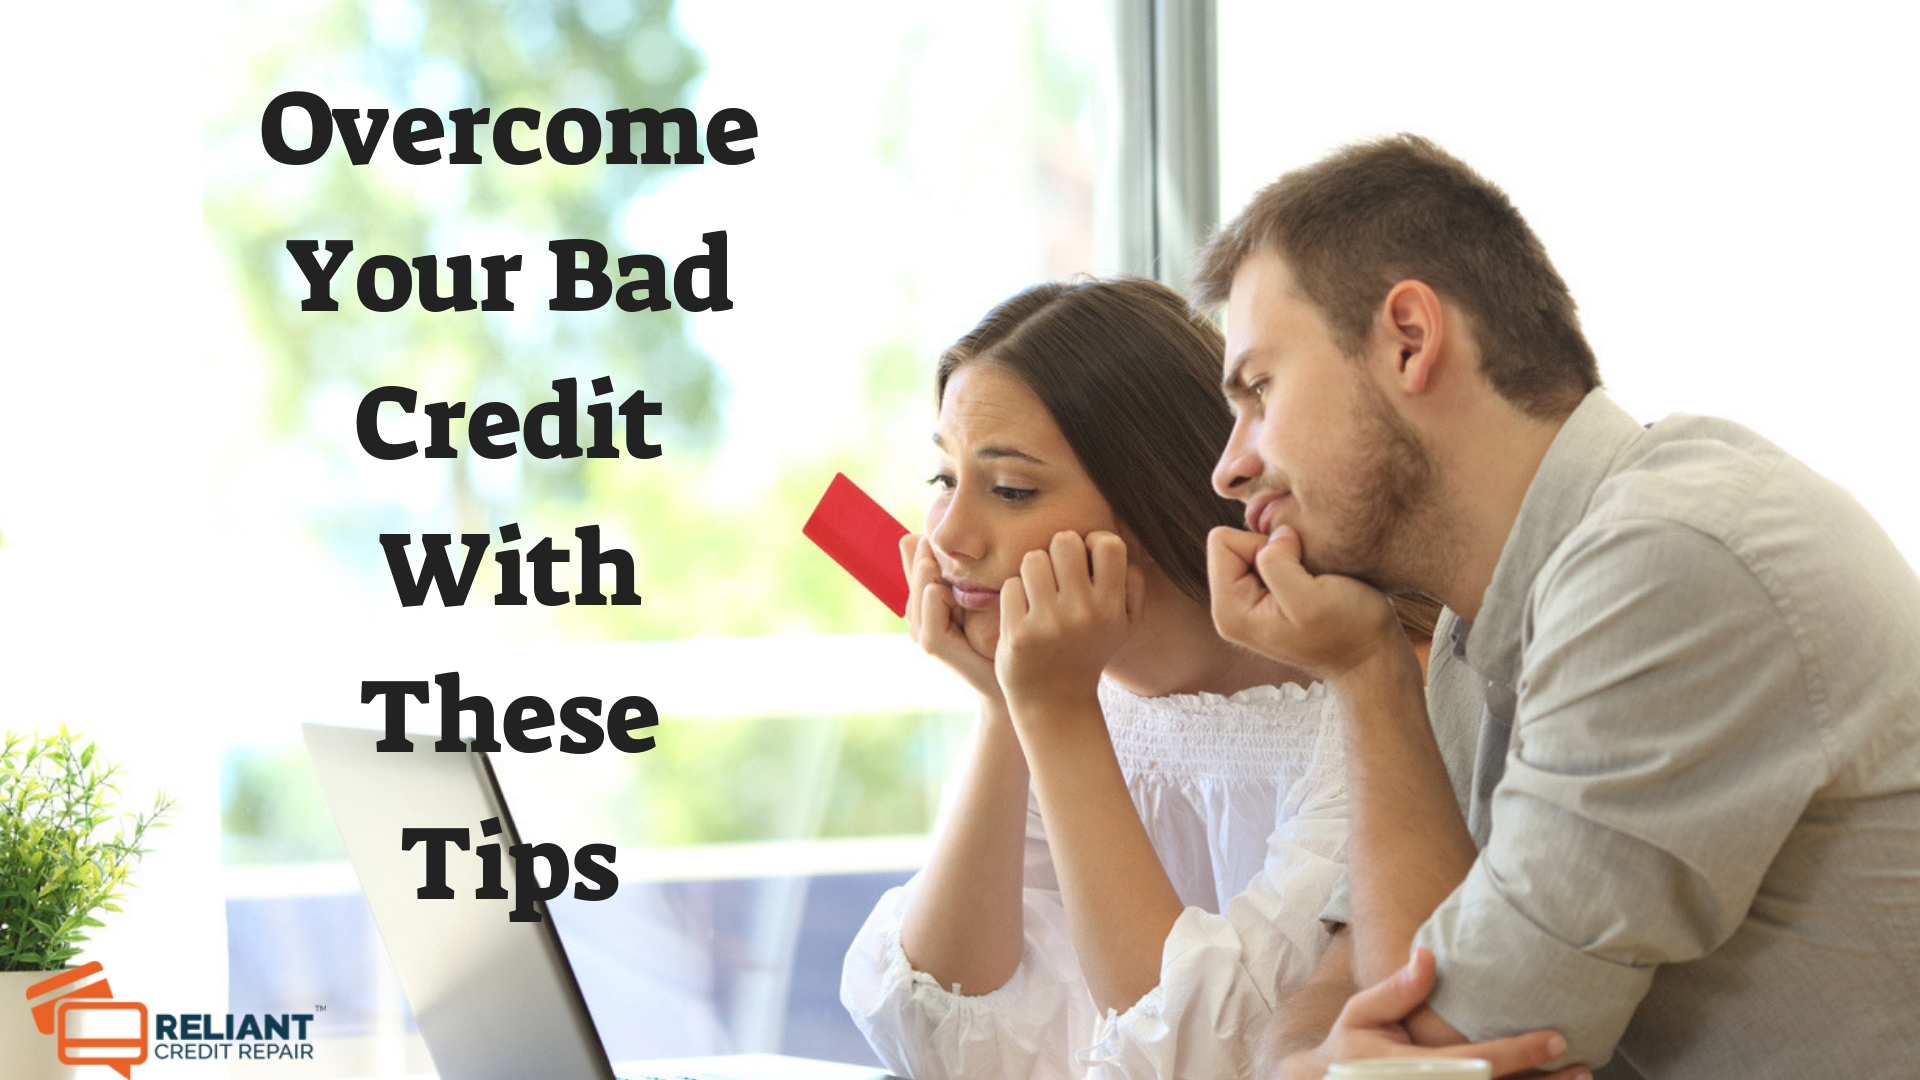 Overcome Your Bad Credit With These Tips